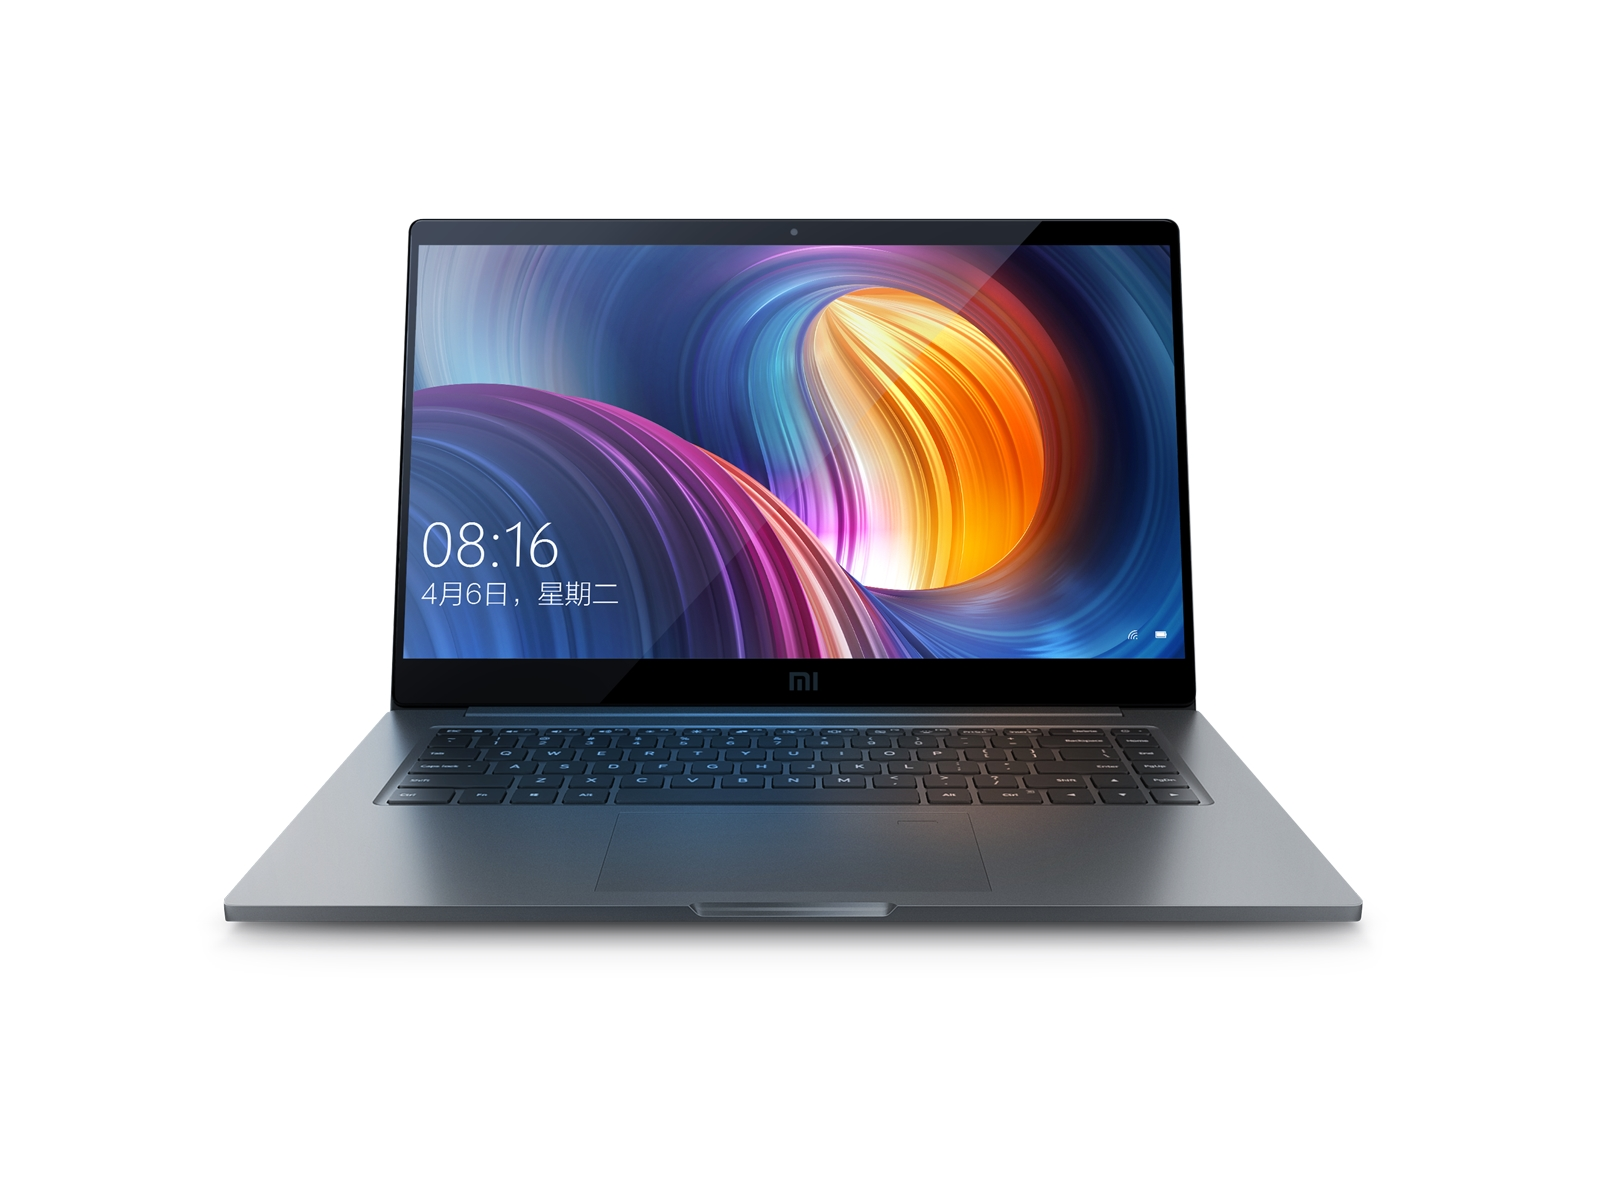 xiaomi mi notebook pro le fabricant chinois s 39 attaque au macbook pro frandroid. Black Bedroom Furniture Sets. Home Design Ideas